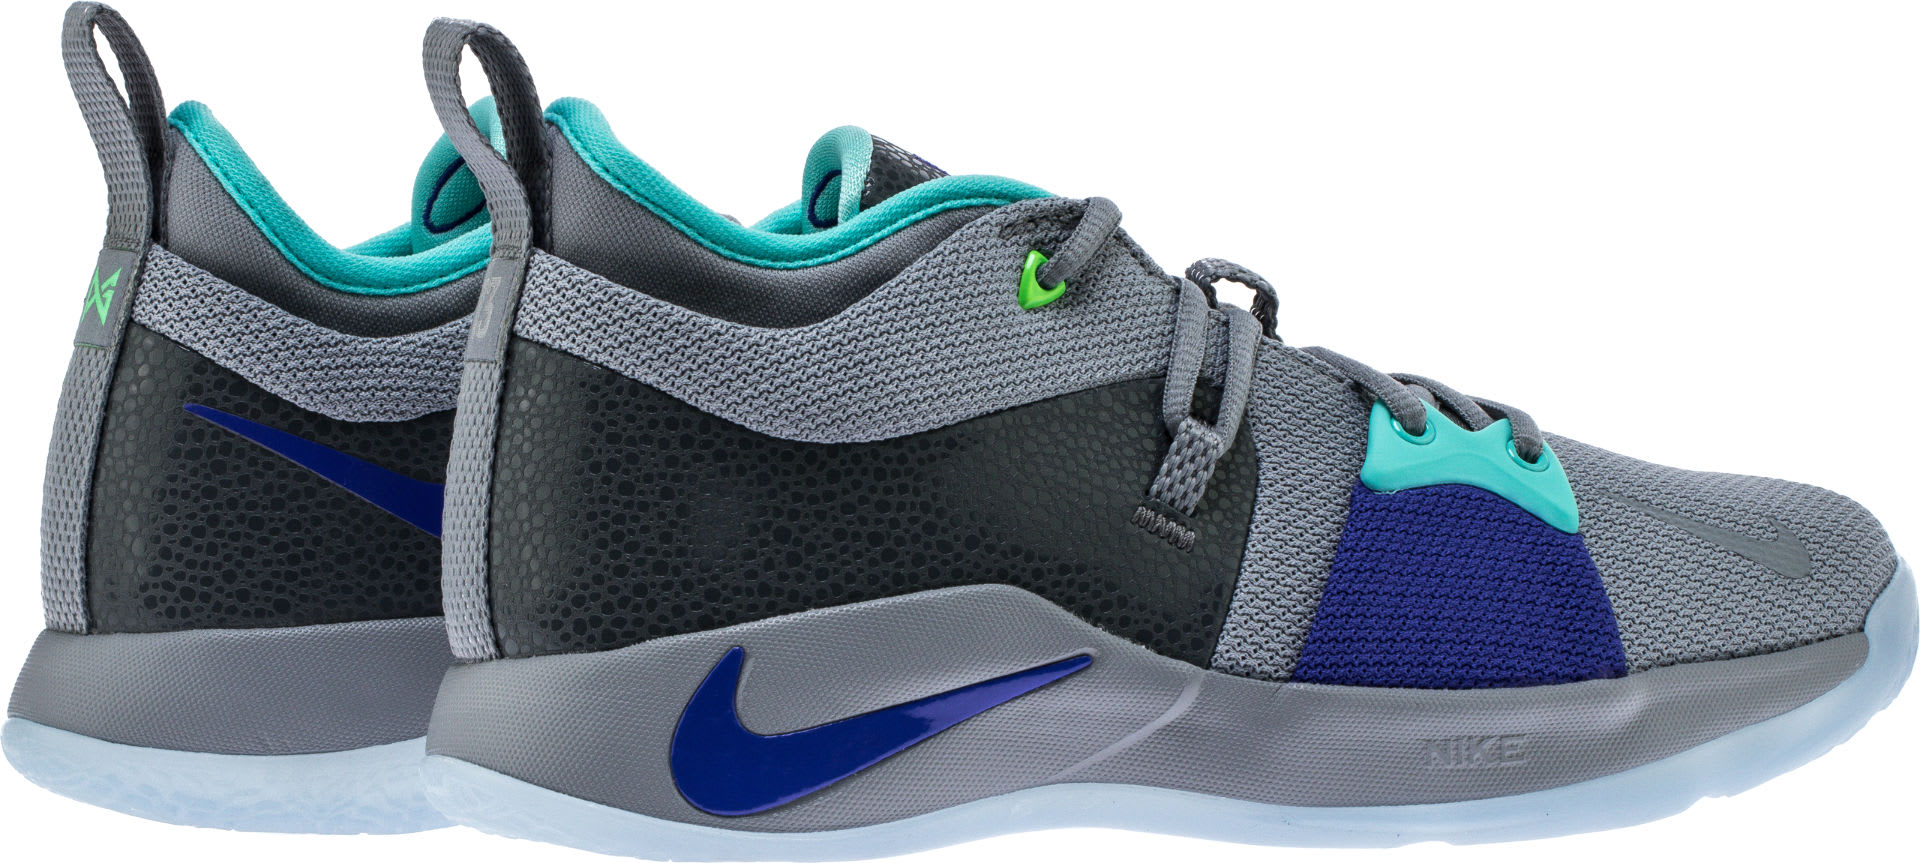 Nike PG2 Pure Platinum Neo Turquoise Wolf Grey Aurora Green Release Date AJ2039-002 Back